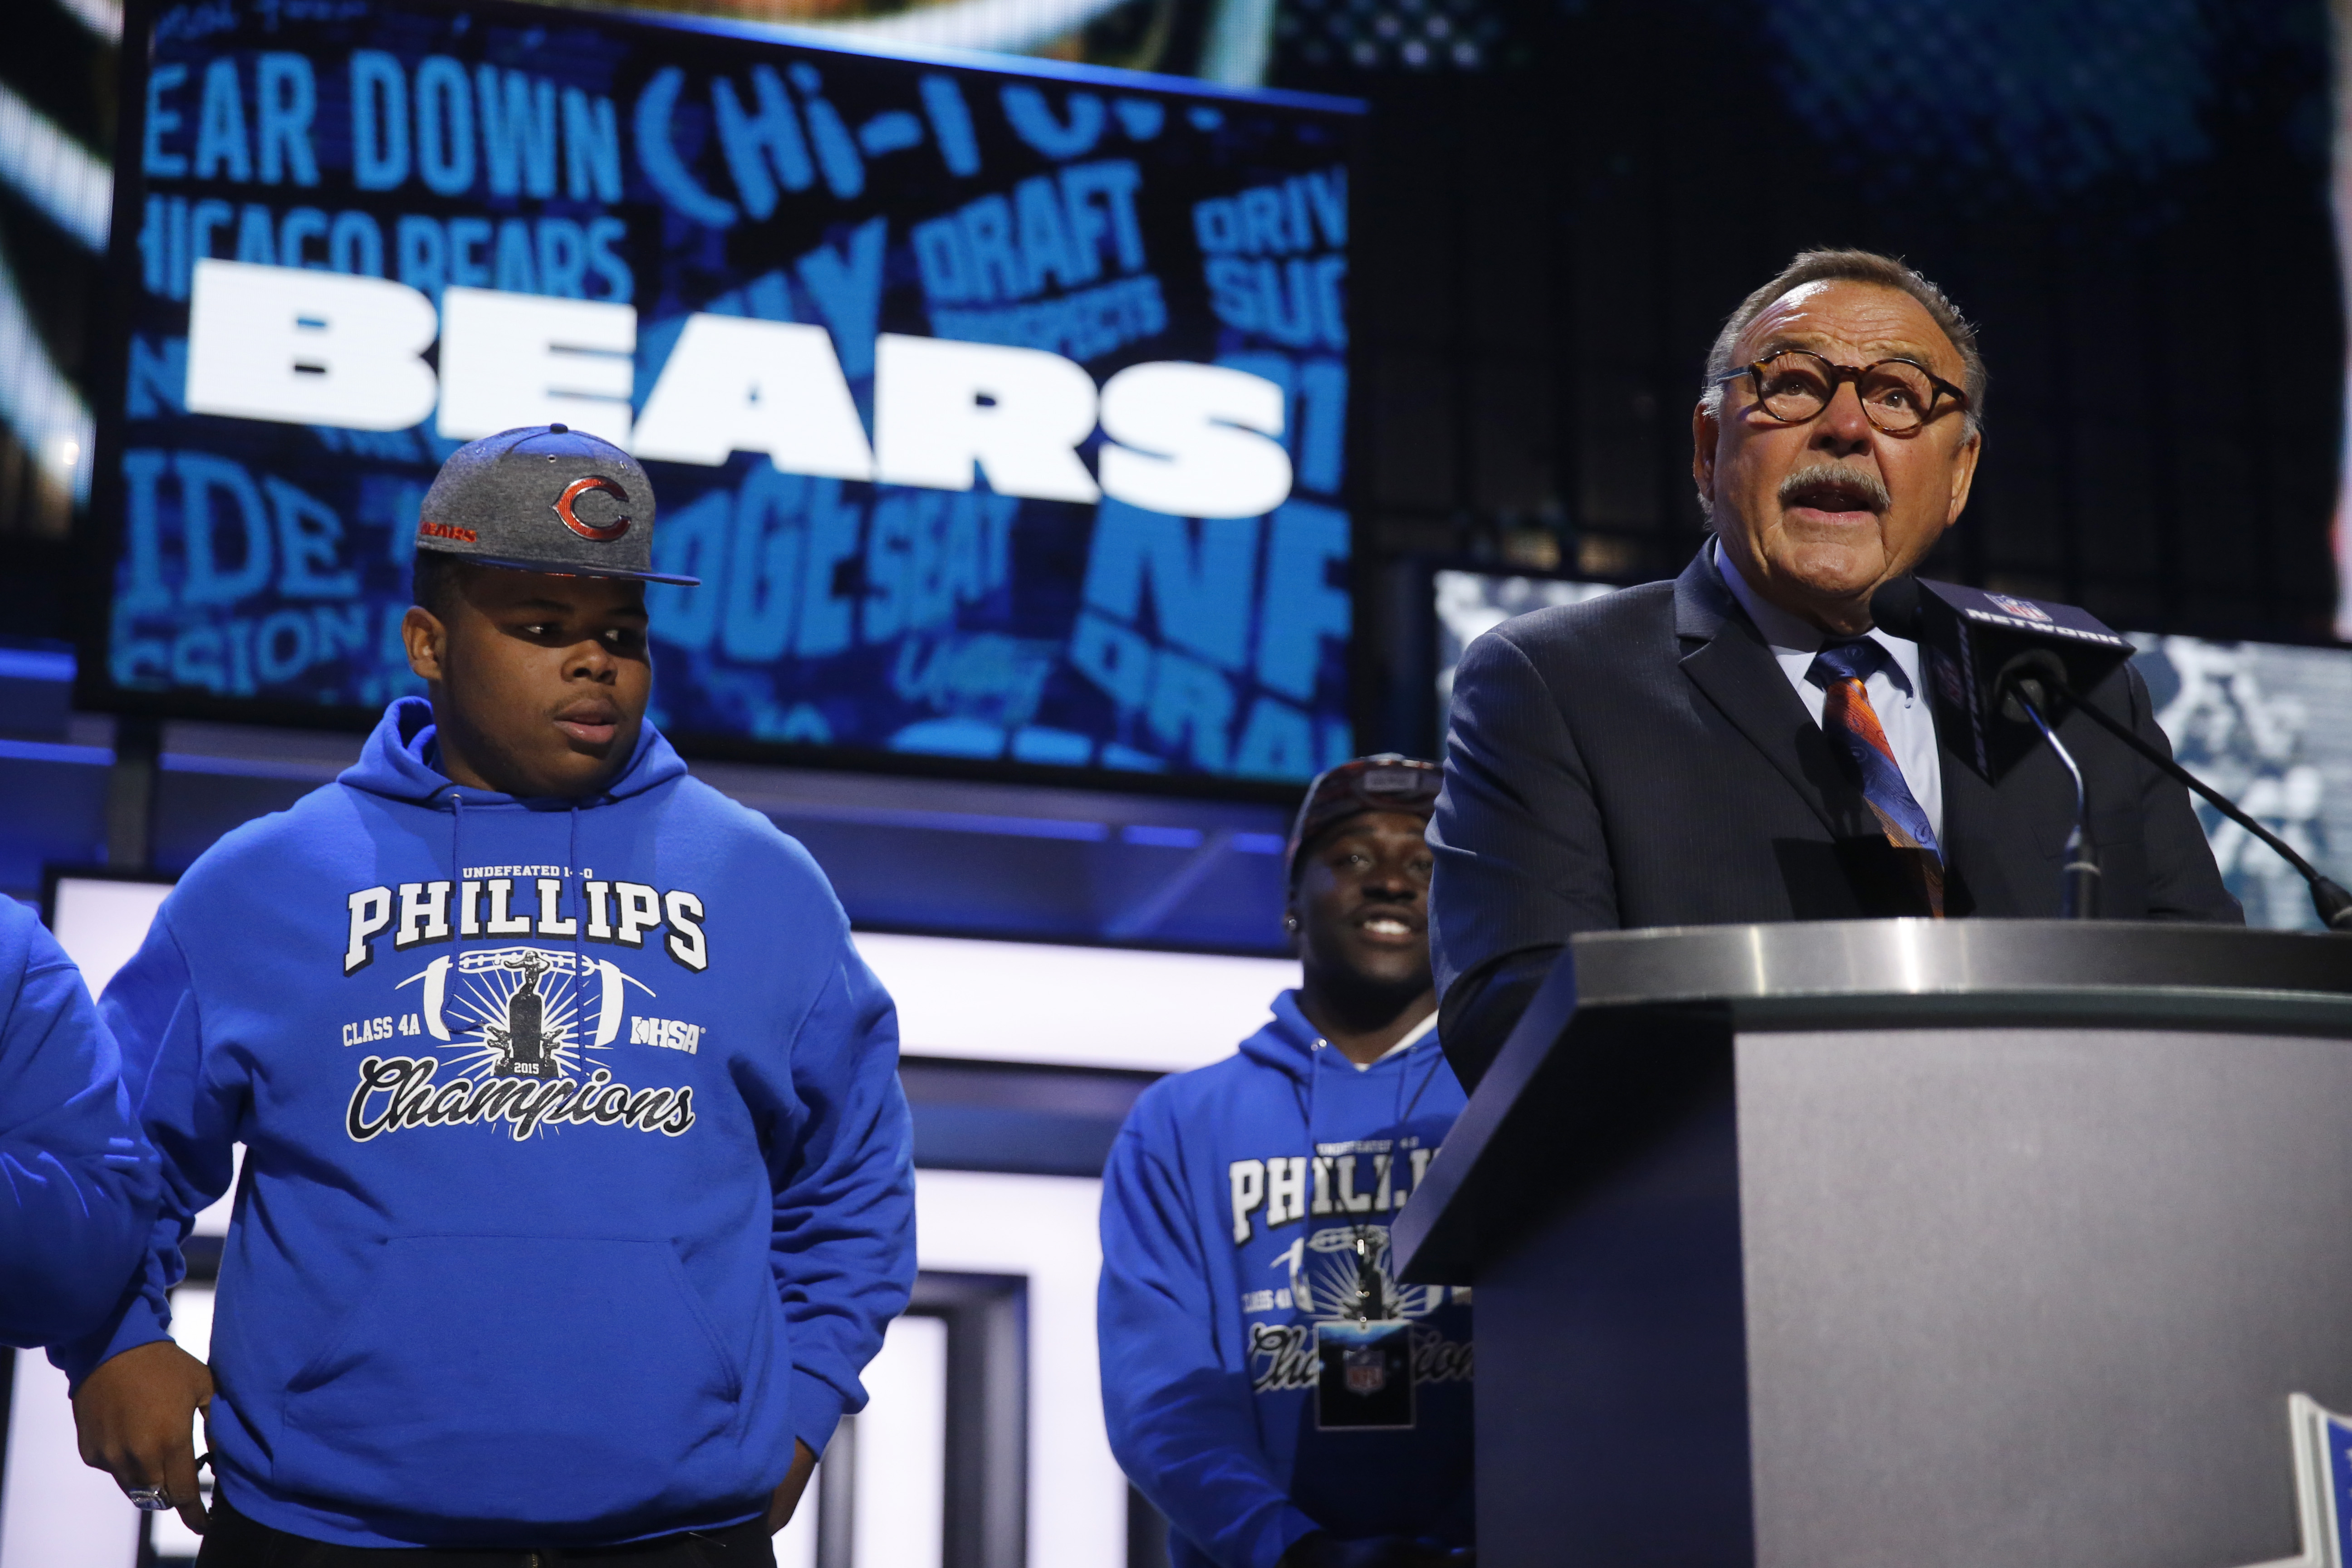 Former NFL player Dick Butkus announces that the Chicago Bears selects Kansas States Cody Whitehair as the 56th pick in the second round of the 2016 NFL football draft, Friday, April 29, 2016, in Chicago. (AP Photo/Charles Rex Arbogast)